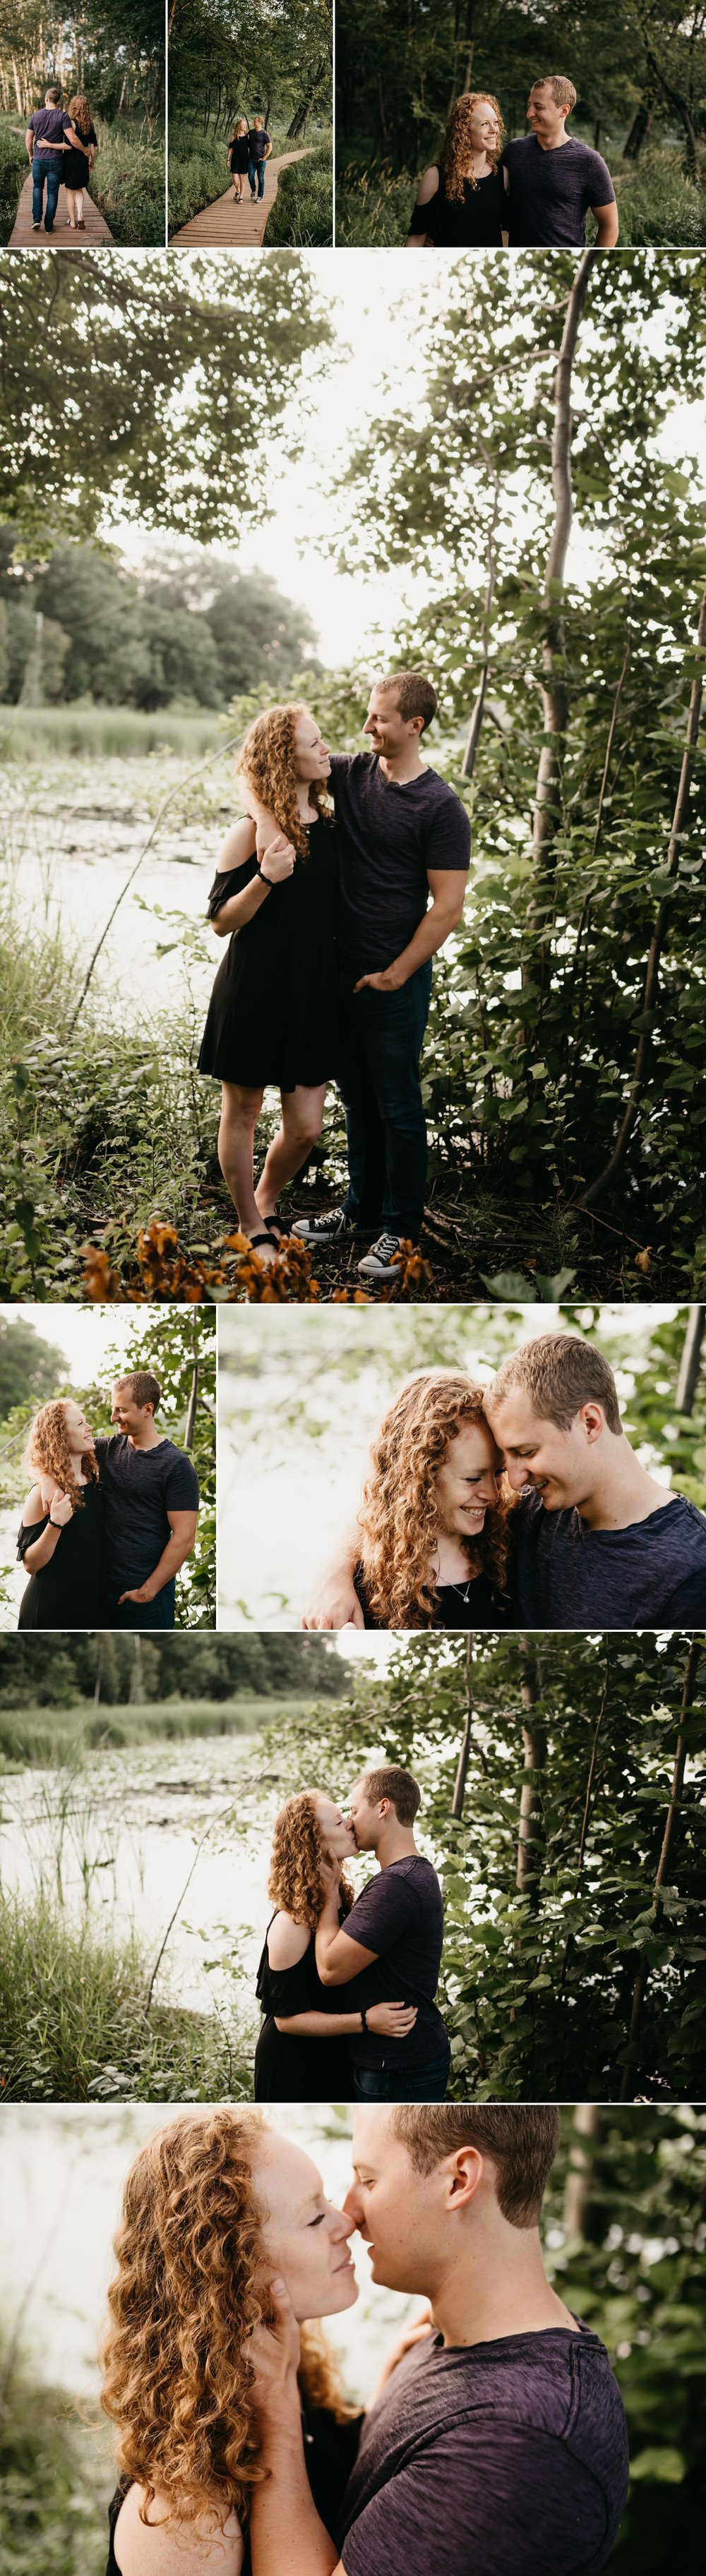 MN Outdoors Engagement Session 7.jpg